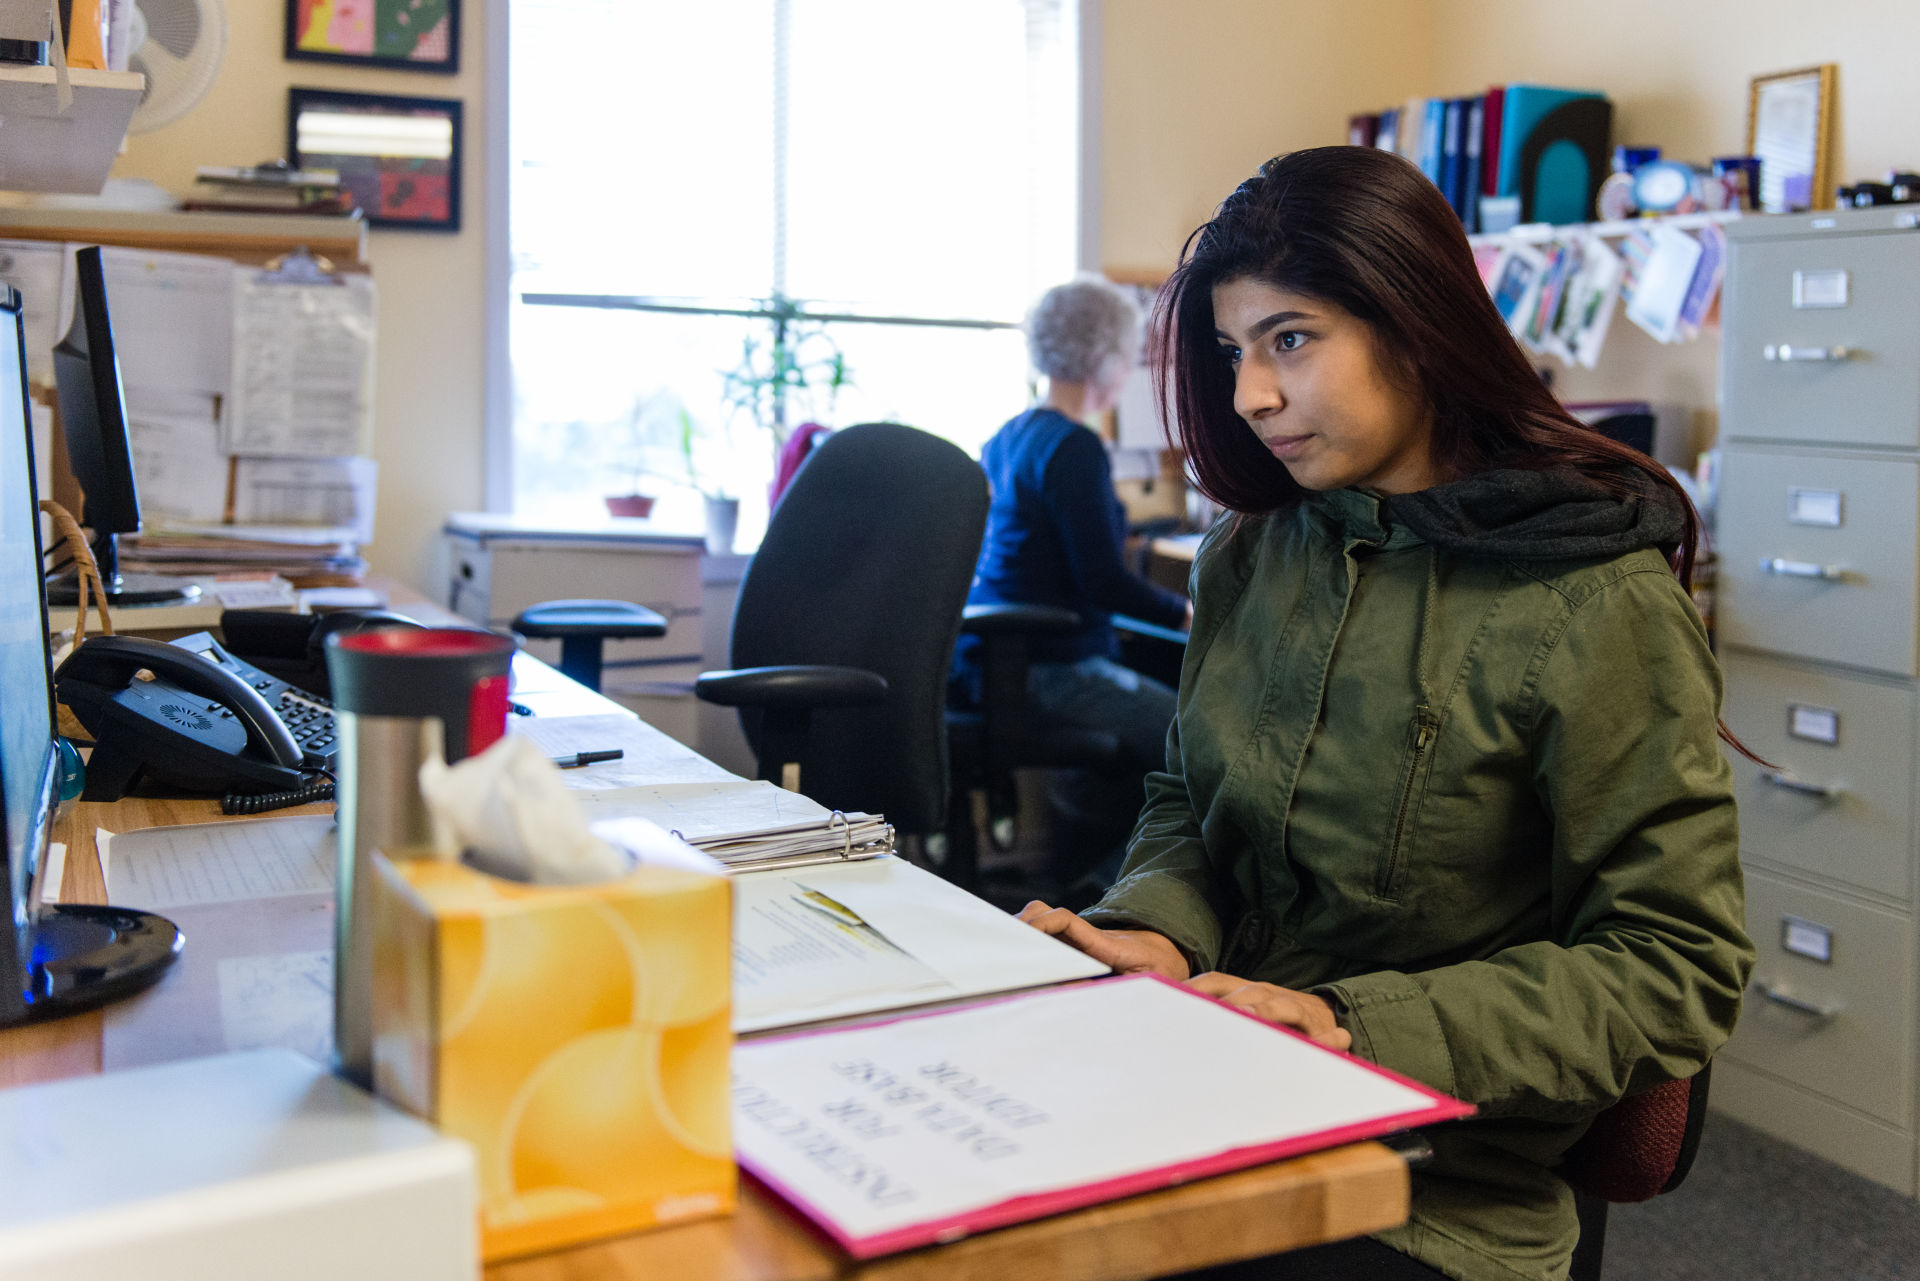 Nubia Flores Miranda, 18, works part-time at Family Paths, a counseling and mental health organization in Oakland. Miranda said she became interested in a career in mental health after she started experiencing depression and anxiety her freshman year at Life Academy of Health and Bioscience.